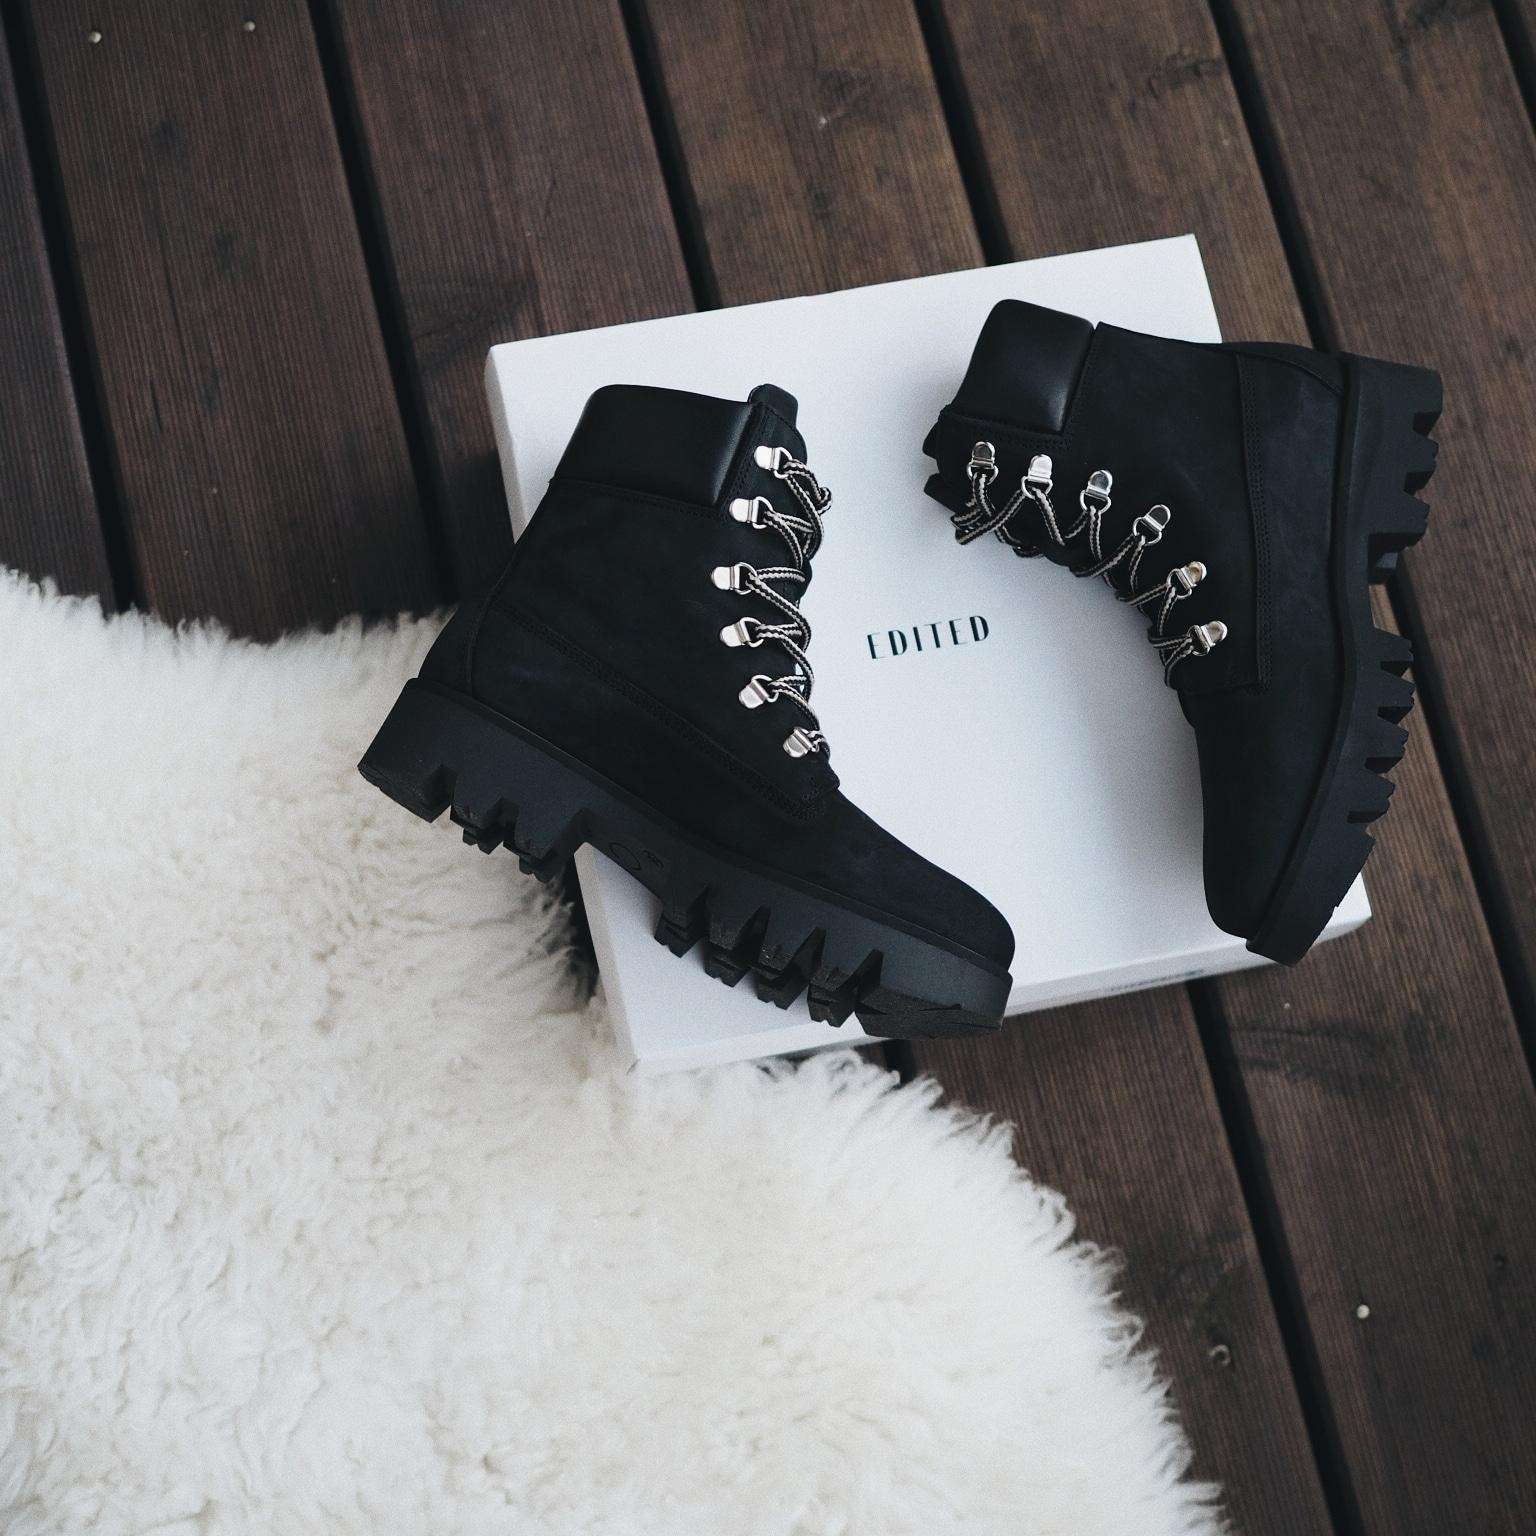 Boots 🖤 #herbstlook #fashioncrush #fashion #boots